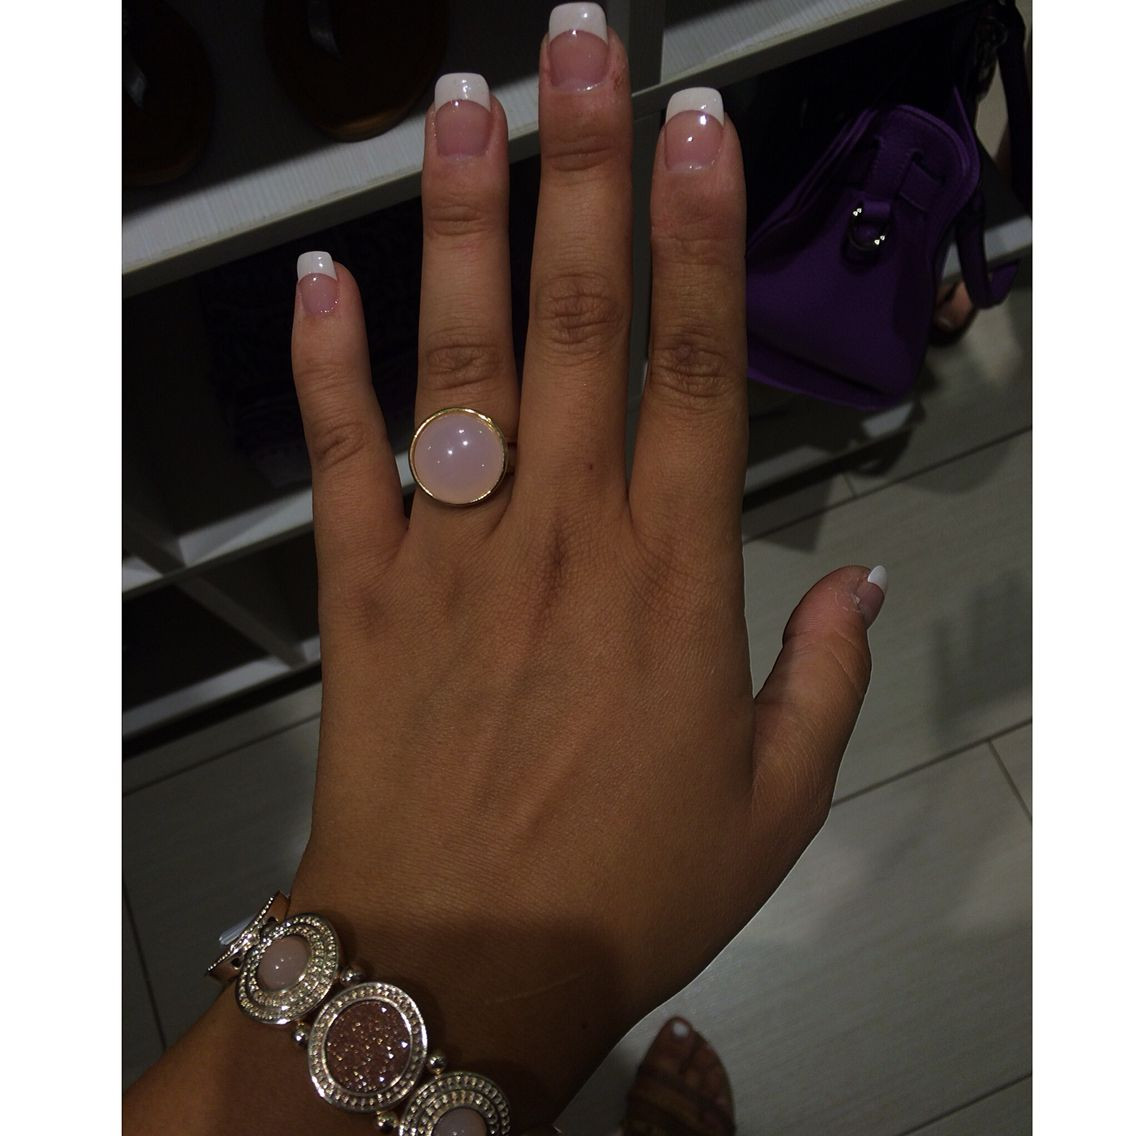 Cute, nails, French tips, cute ring, fake nails, plain French tips ...